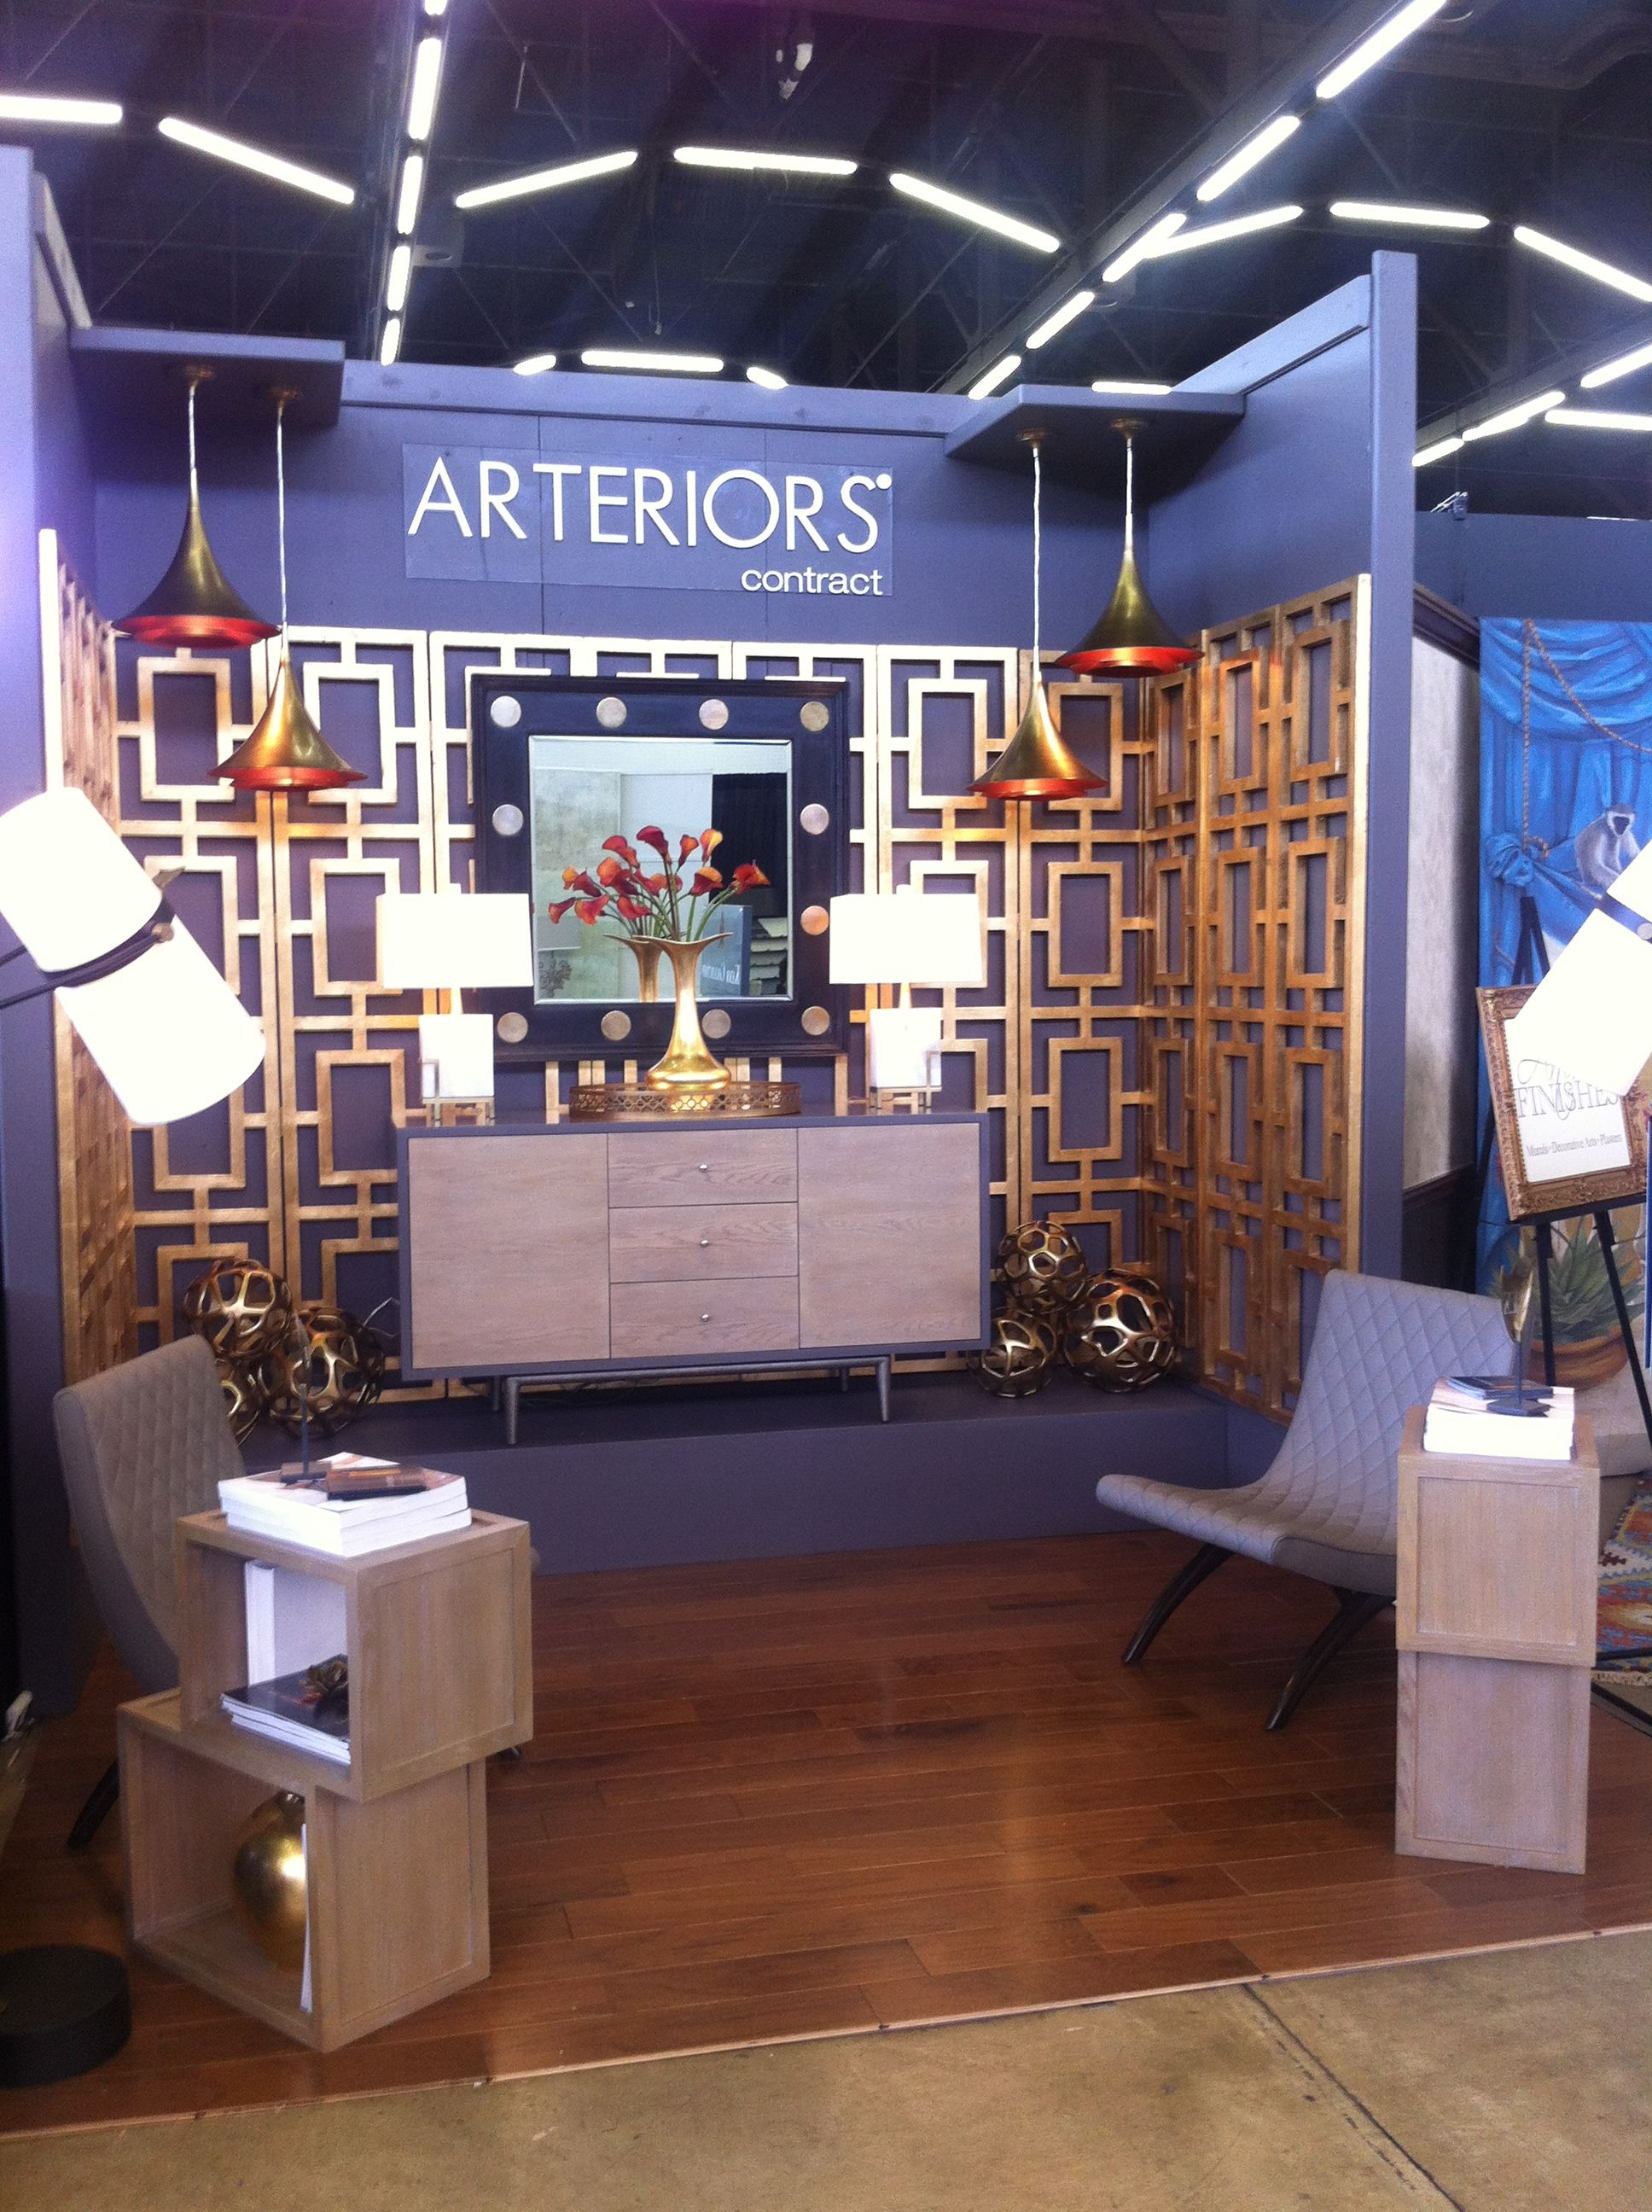 The Arteriors Contract Booth In Dallas Market Hall #572 For Metrocon 2012.  Many Thanks To Leeu0027s Team, Dillon And Katherine For The Design And  Execution!